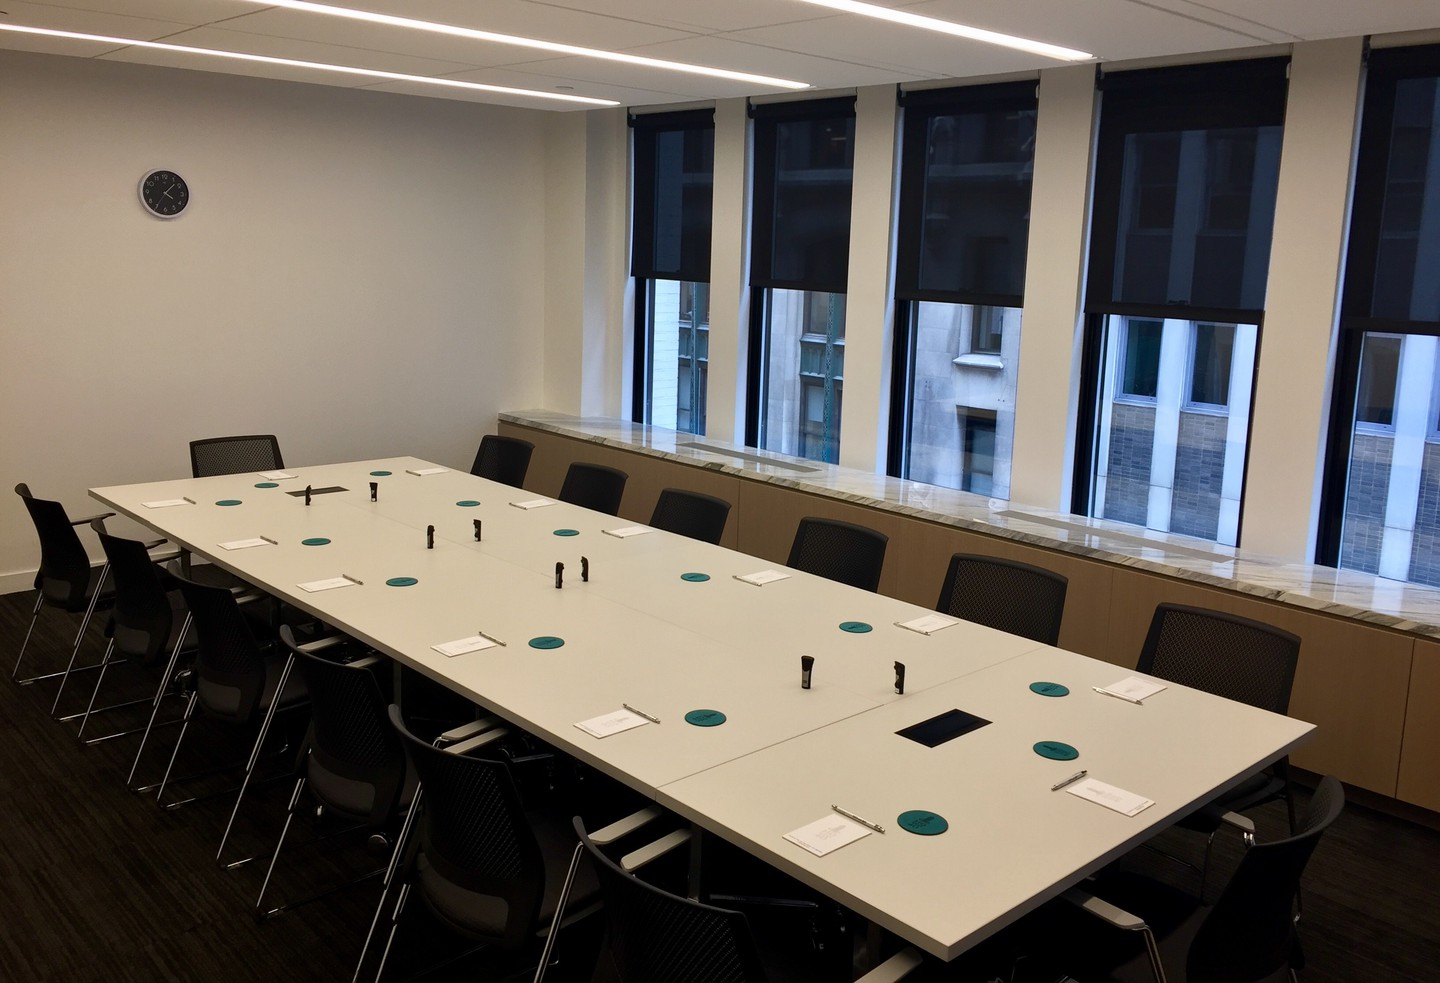 NYC  Meetingraum 110west40 Conference Room A image 1